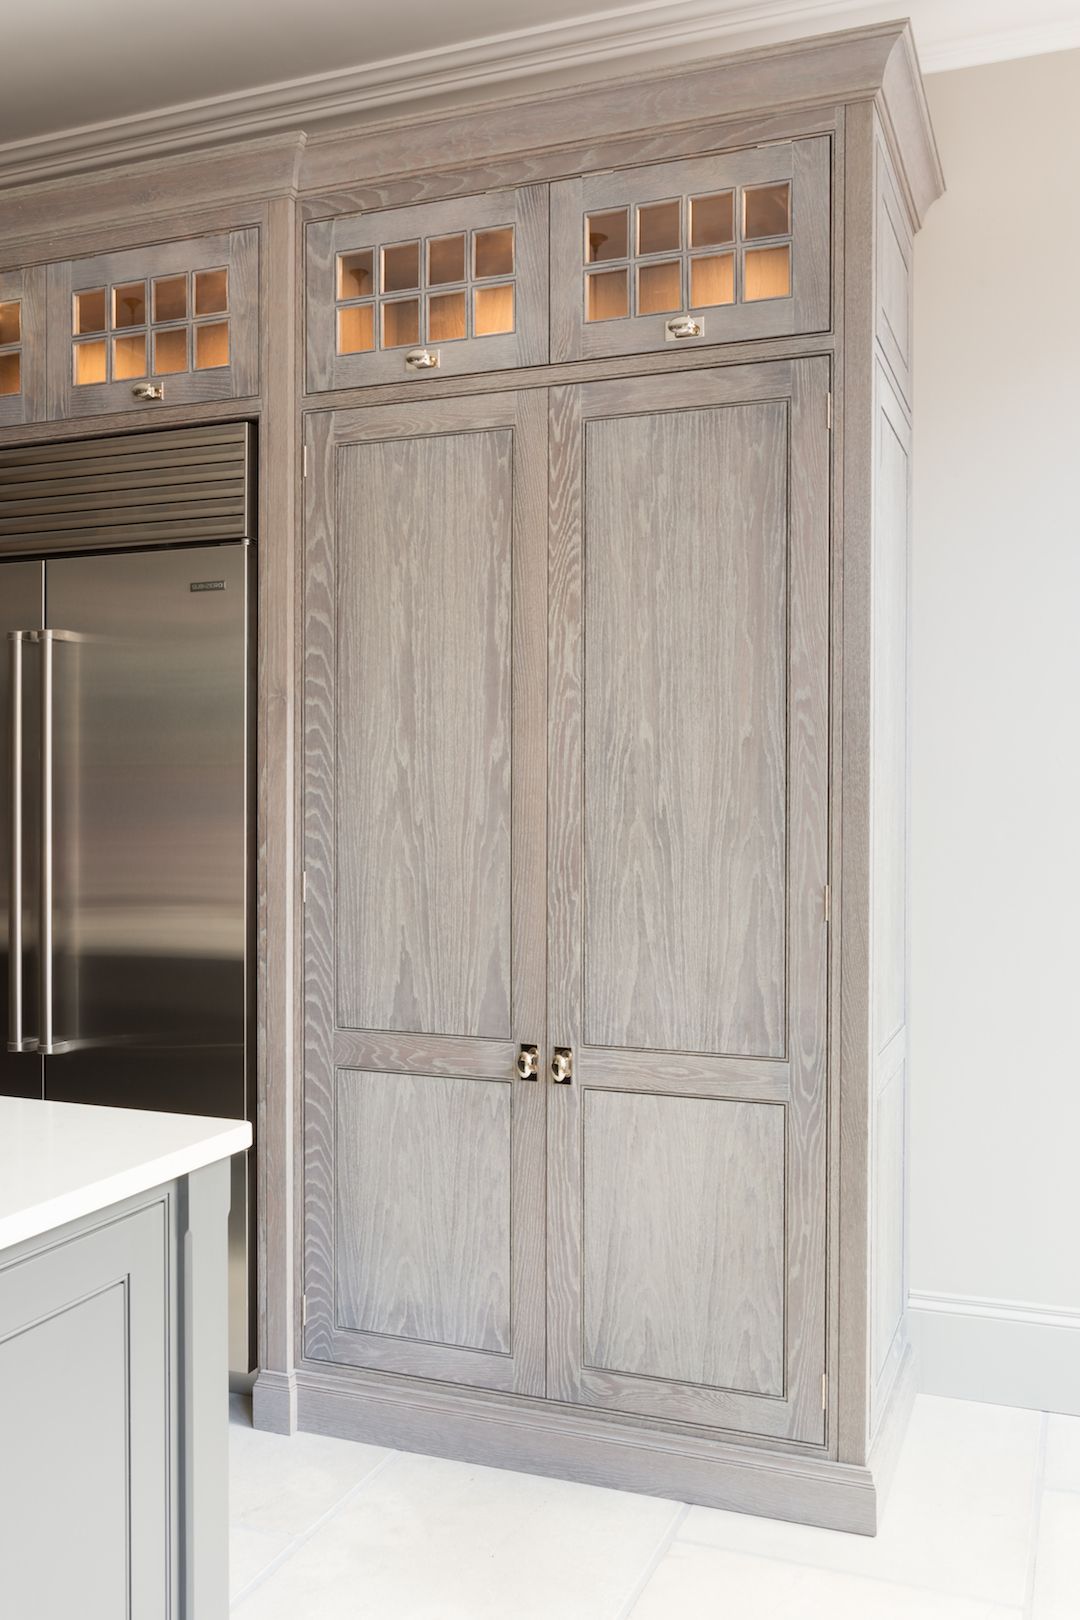 The Day Pantry In The St Albans Showroom Has Been Finished In Smithfield Oak And Has Spice Racks Stained Kitchen Cabinets Kitchen Remodel Small Dream Kitchen